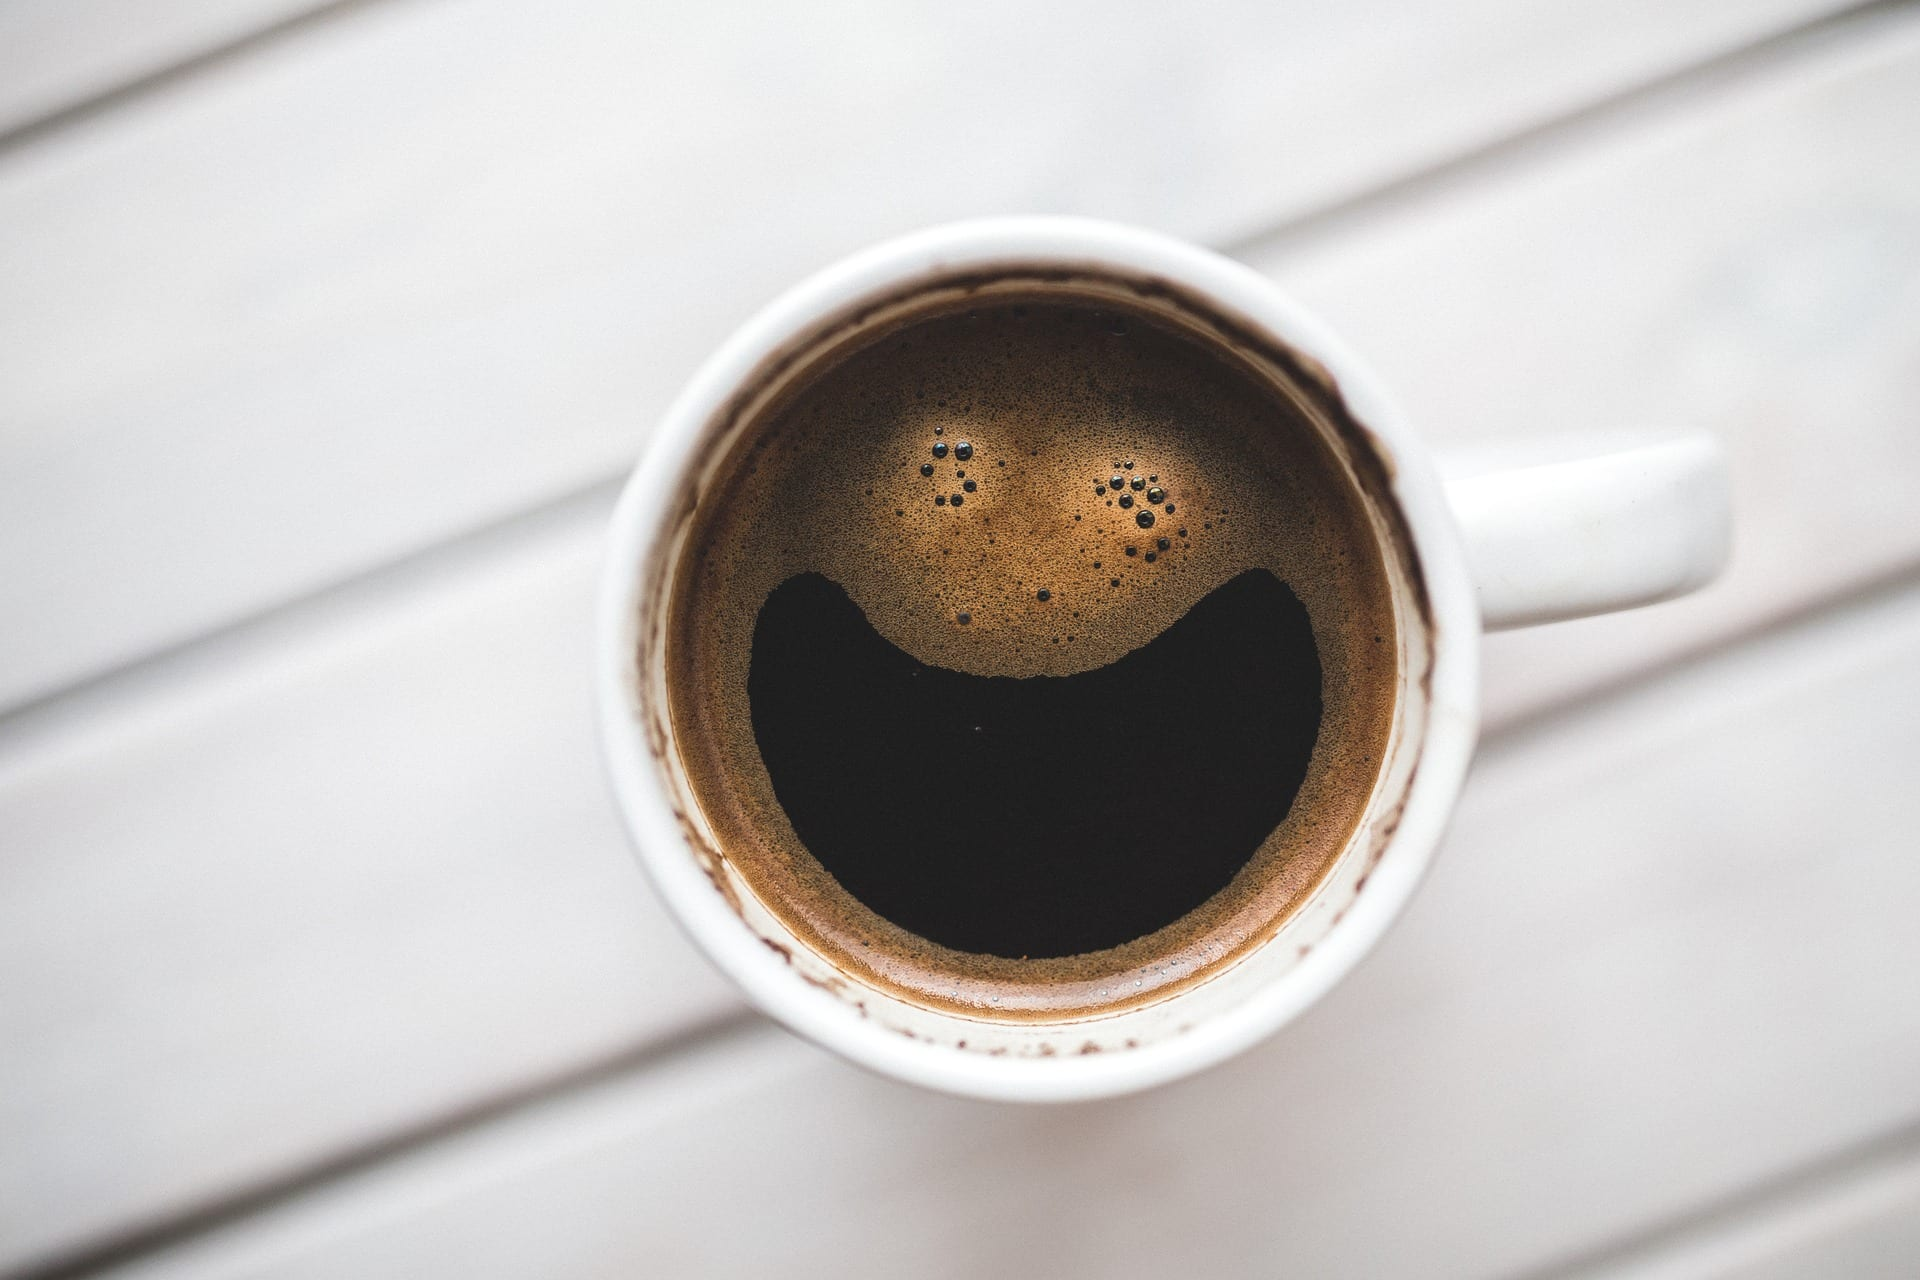 A cup of coffee that's very happy to see you!